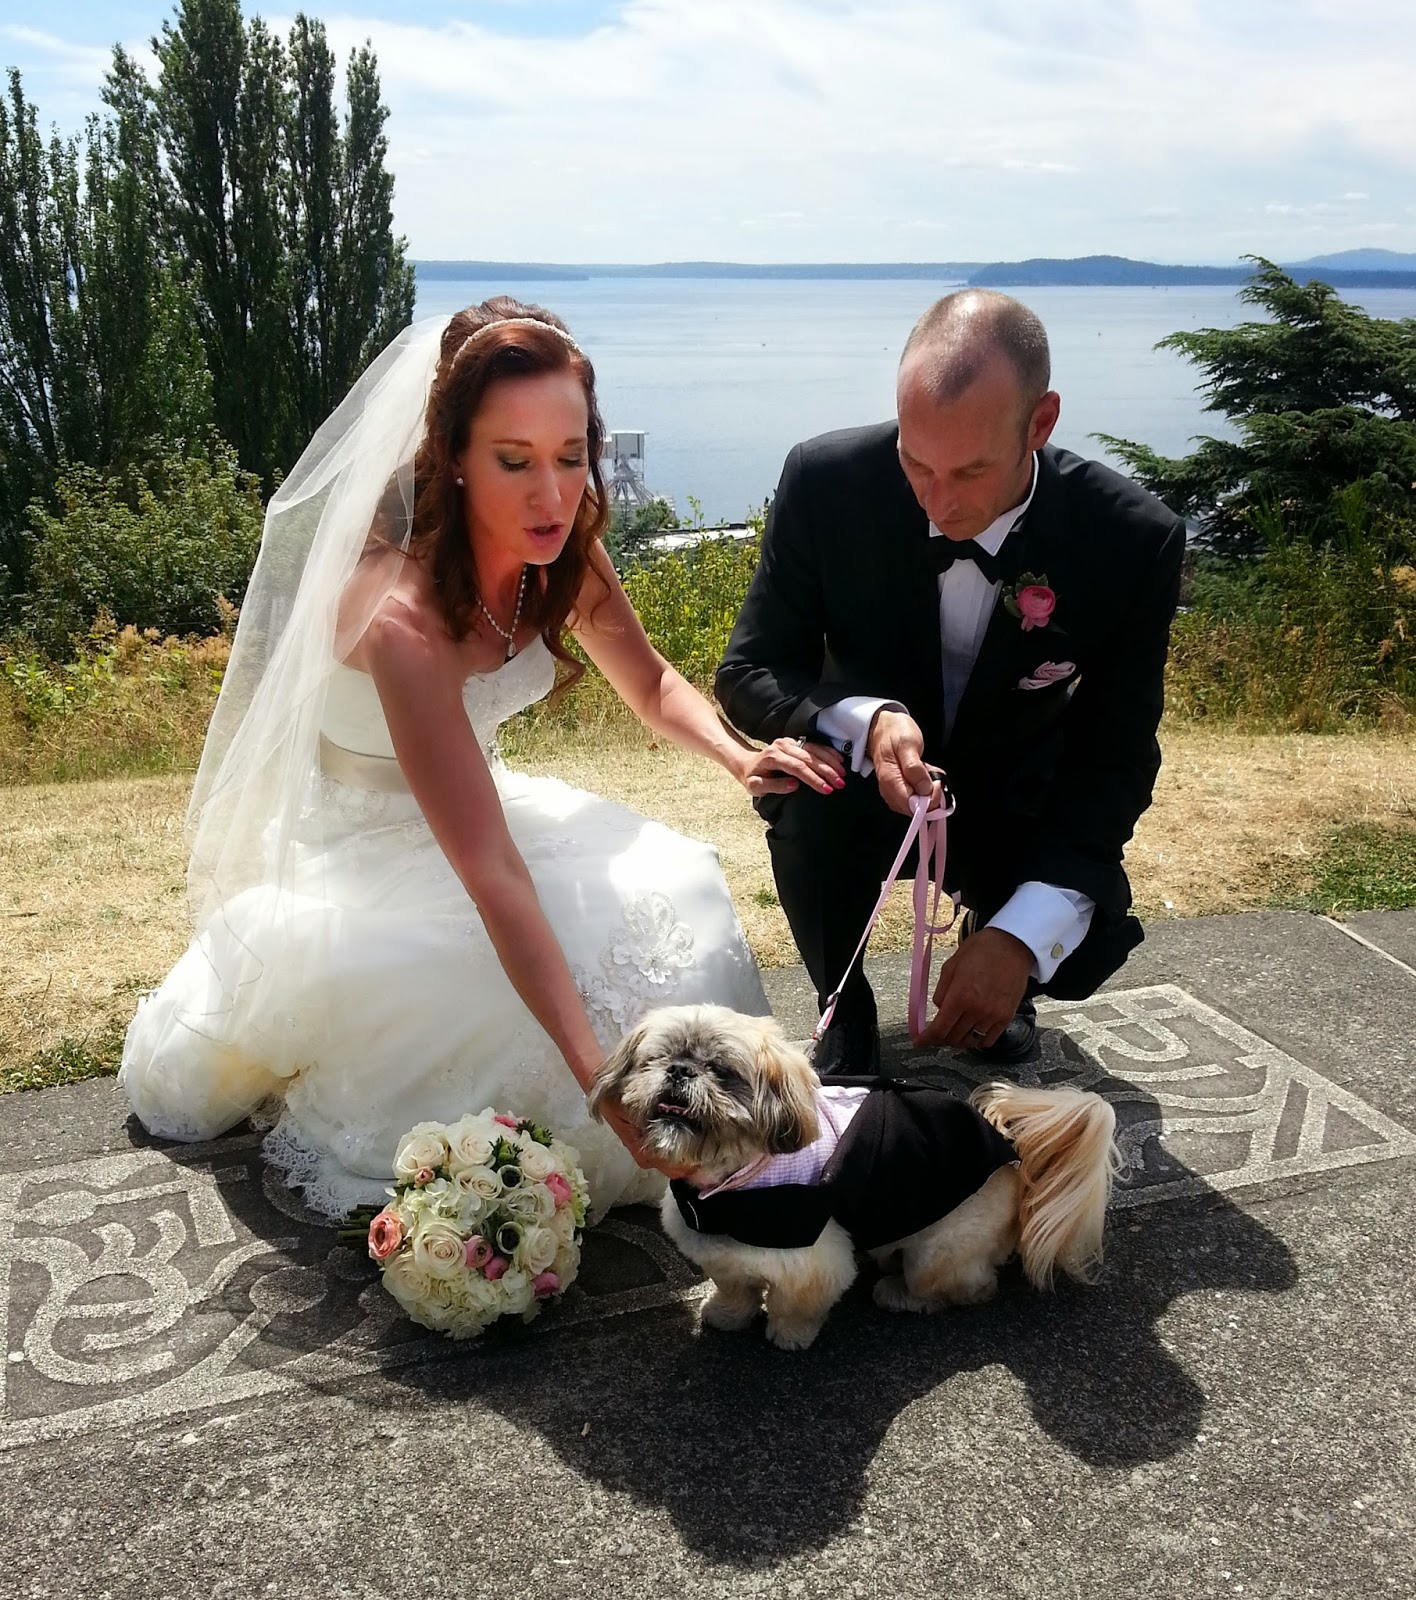 Chewie is obviously a loved wedding dog - Patricia Stimac, Seattle Wedding Officiant